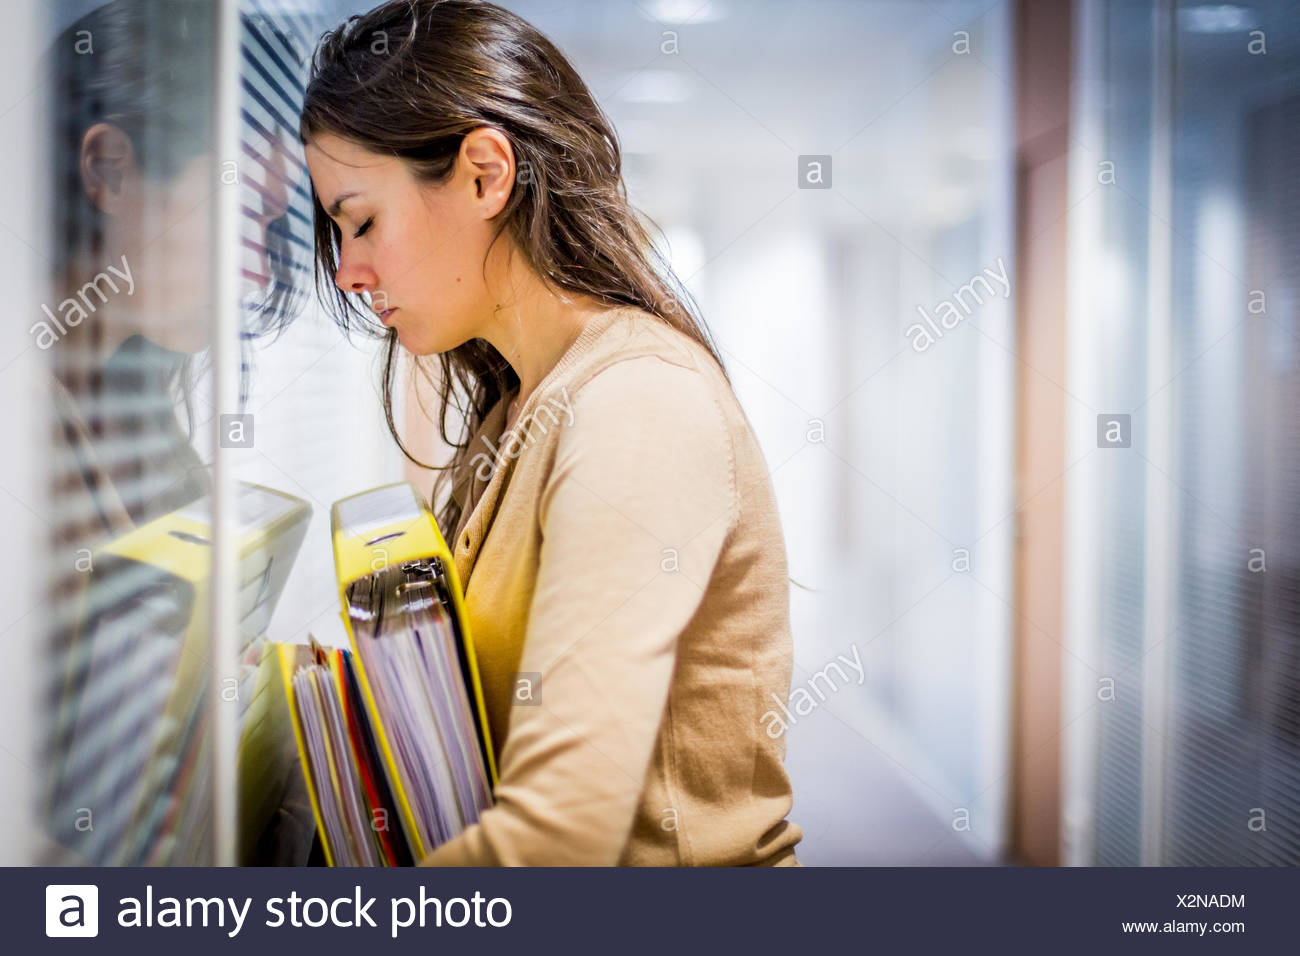 Tired woman at work. - Stock Image